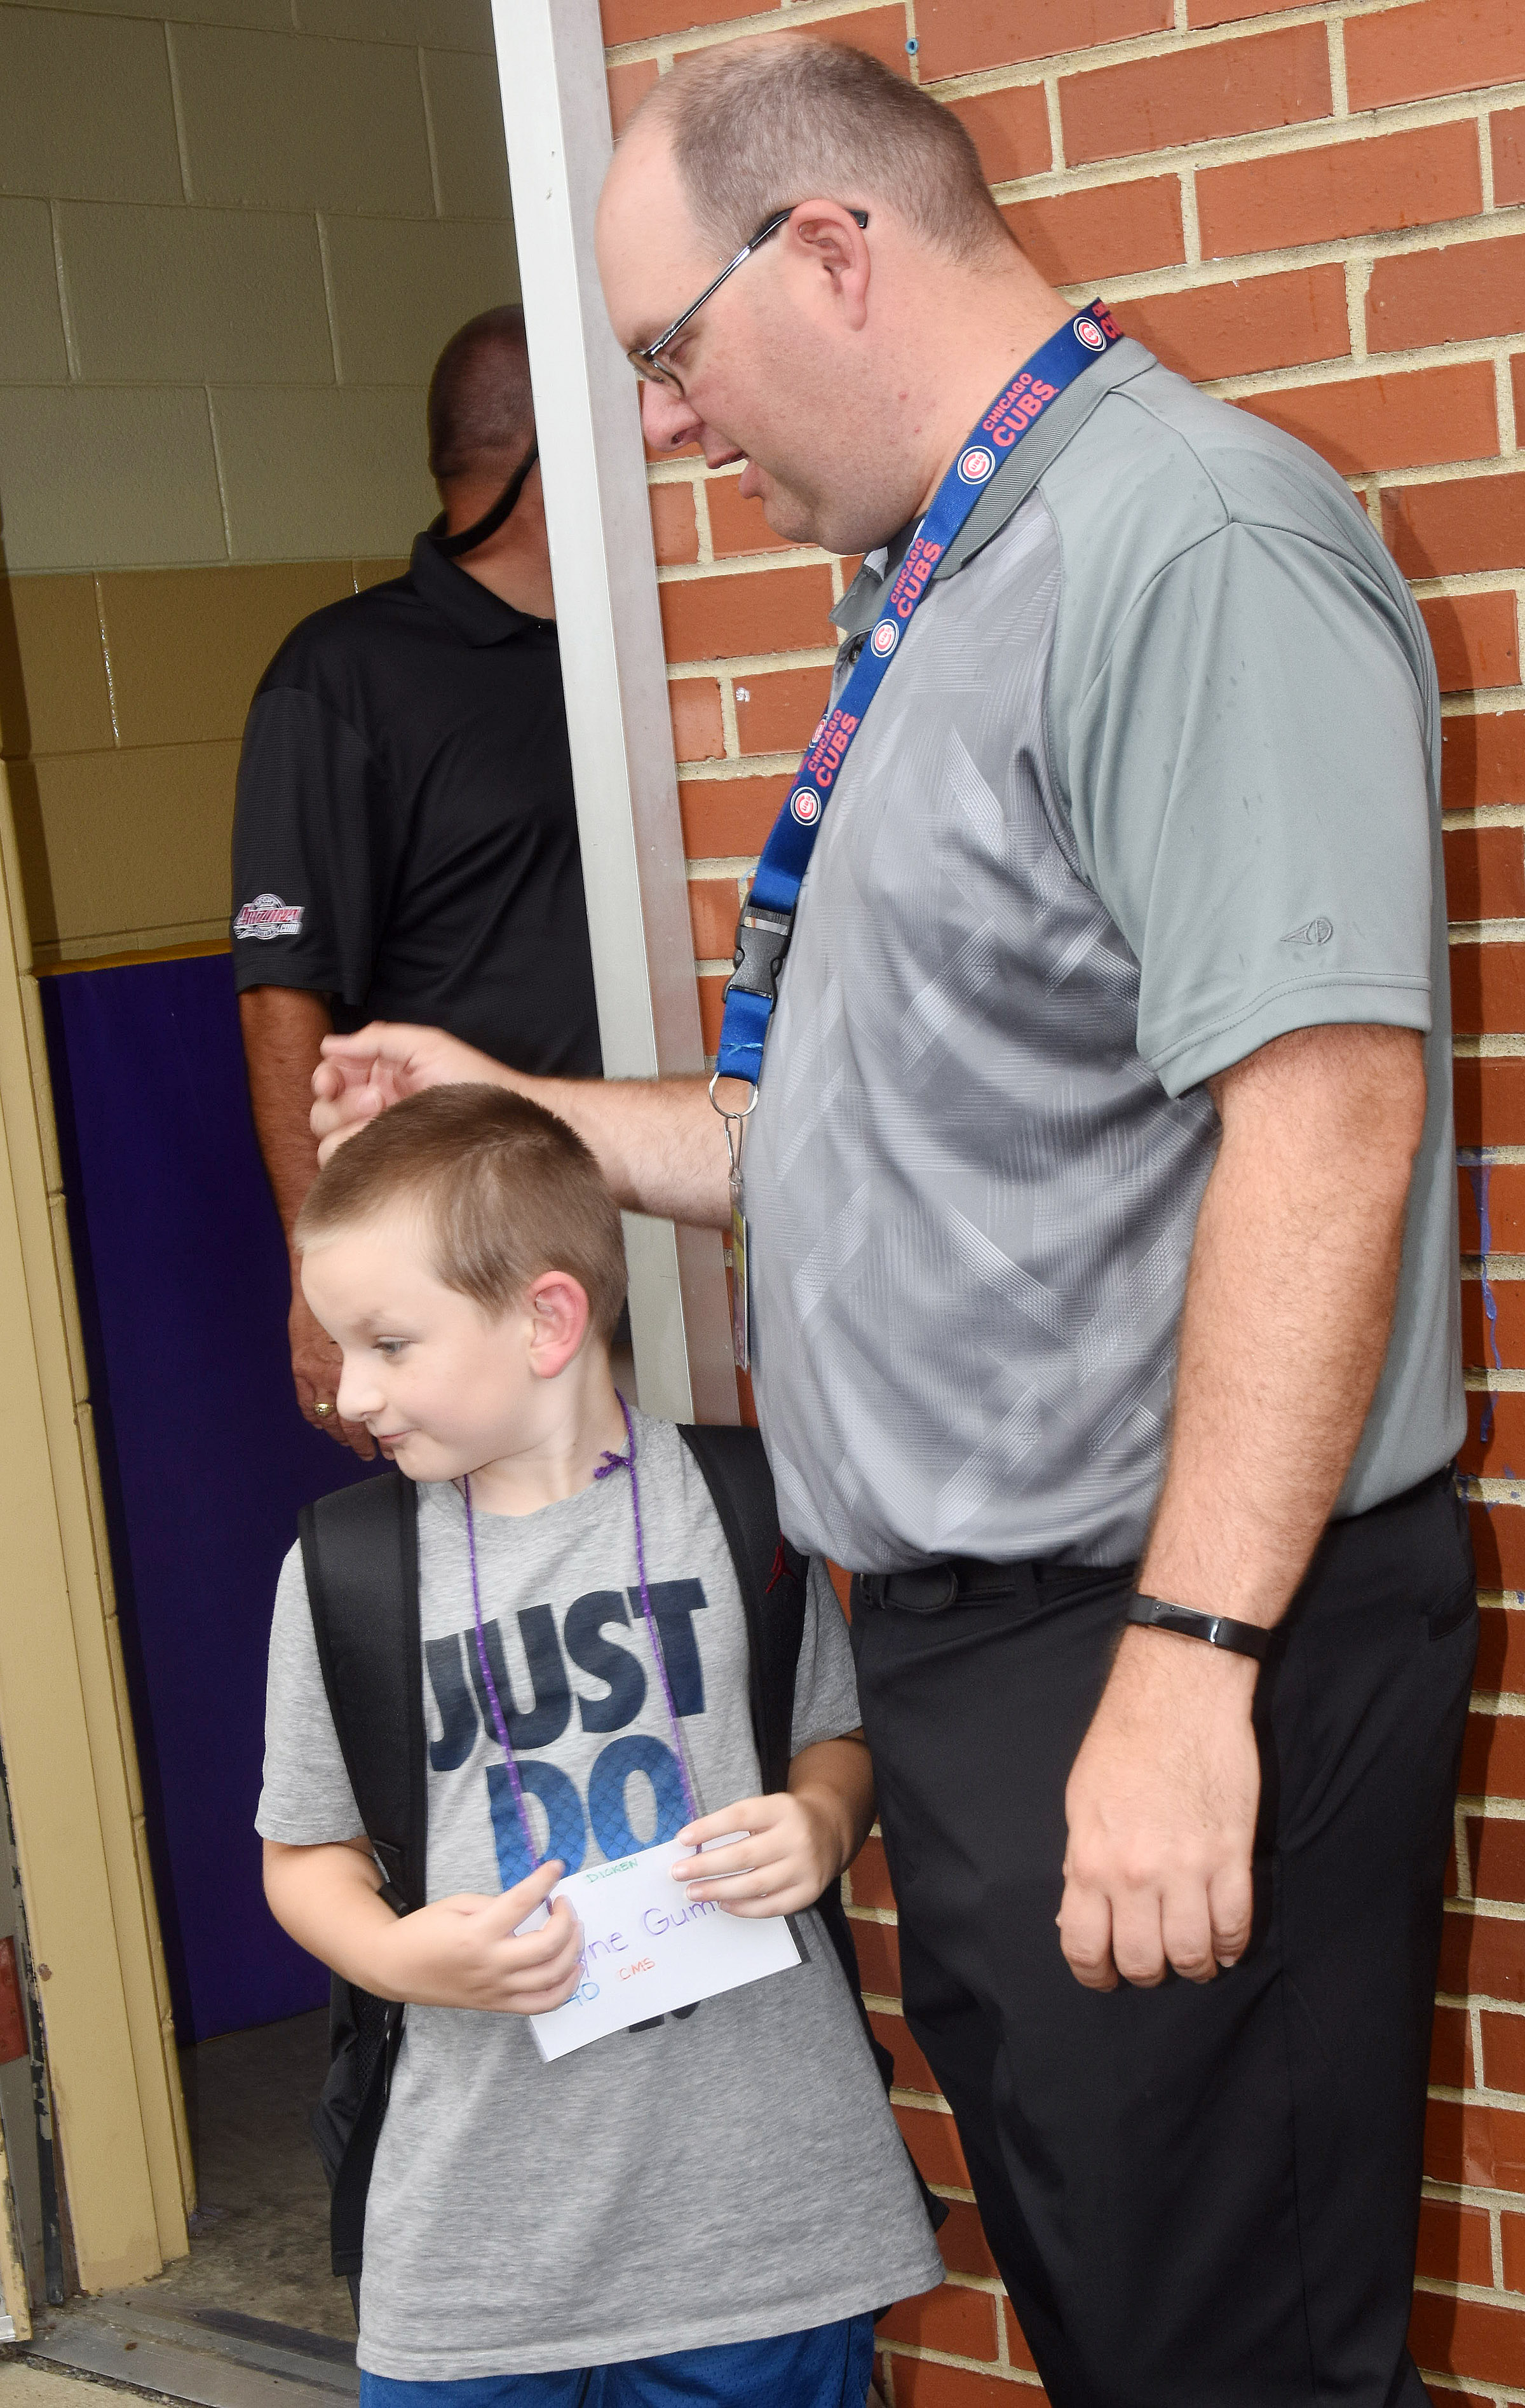 Campbellsville Middle School teacher Steven Gumm greets his son Ryne after his first day of second grade at Campbellsville Elementary School.